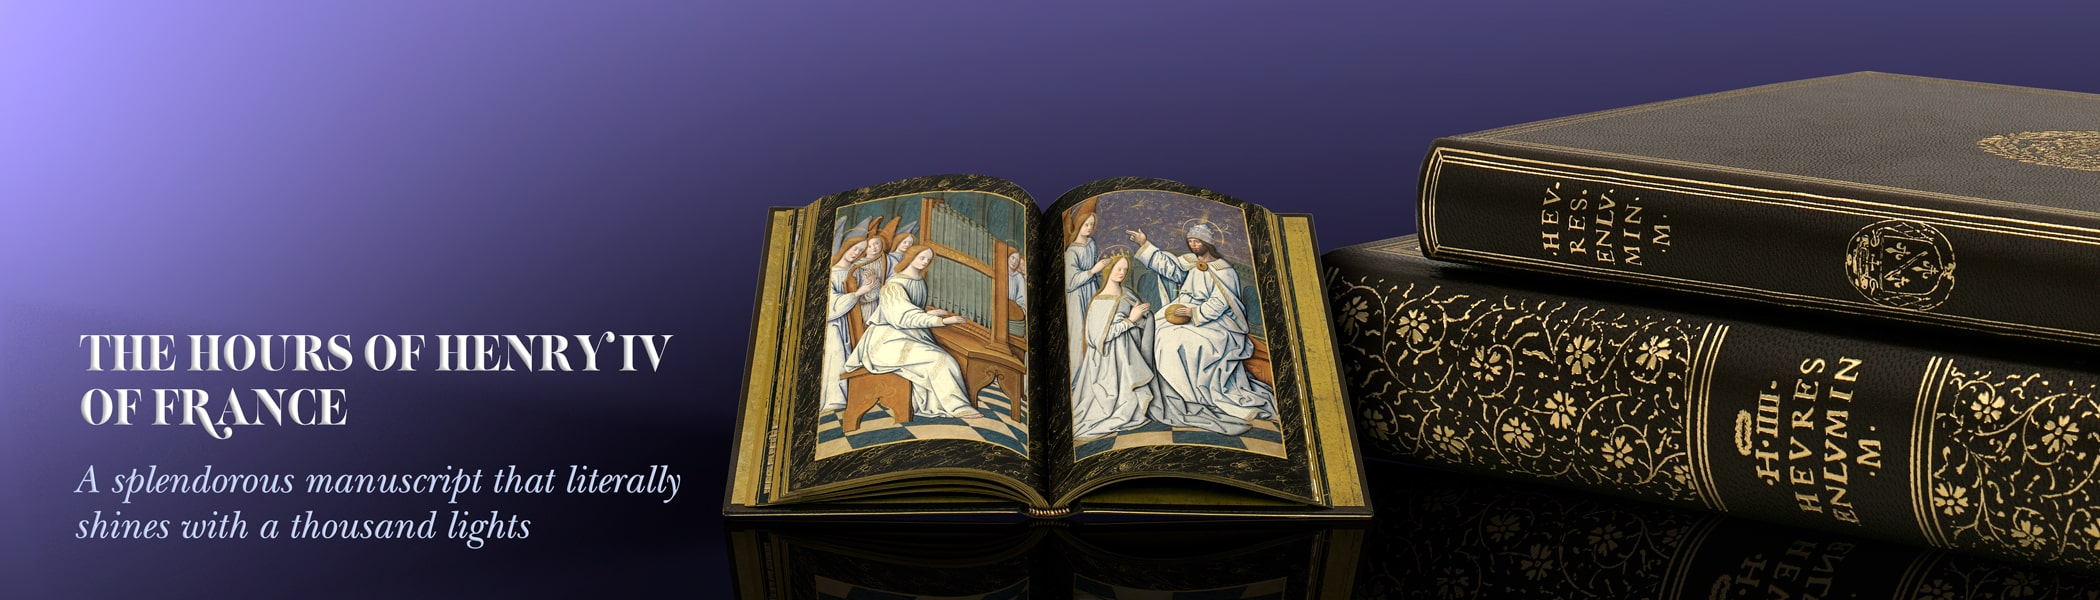 The Hours of Henry IV of France is a splendorous manuscript that literally shines with a thousand lights